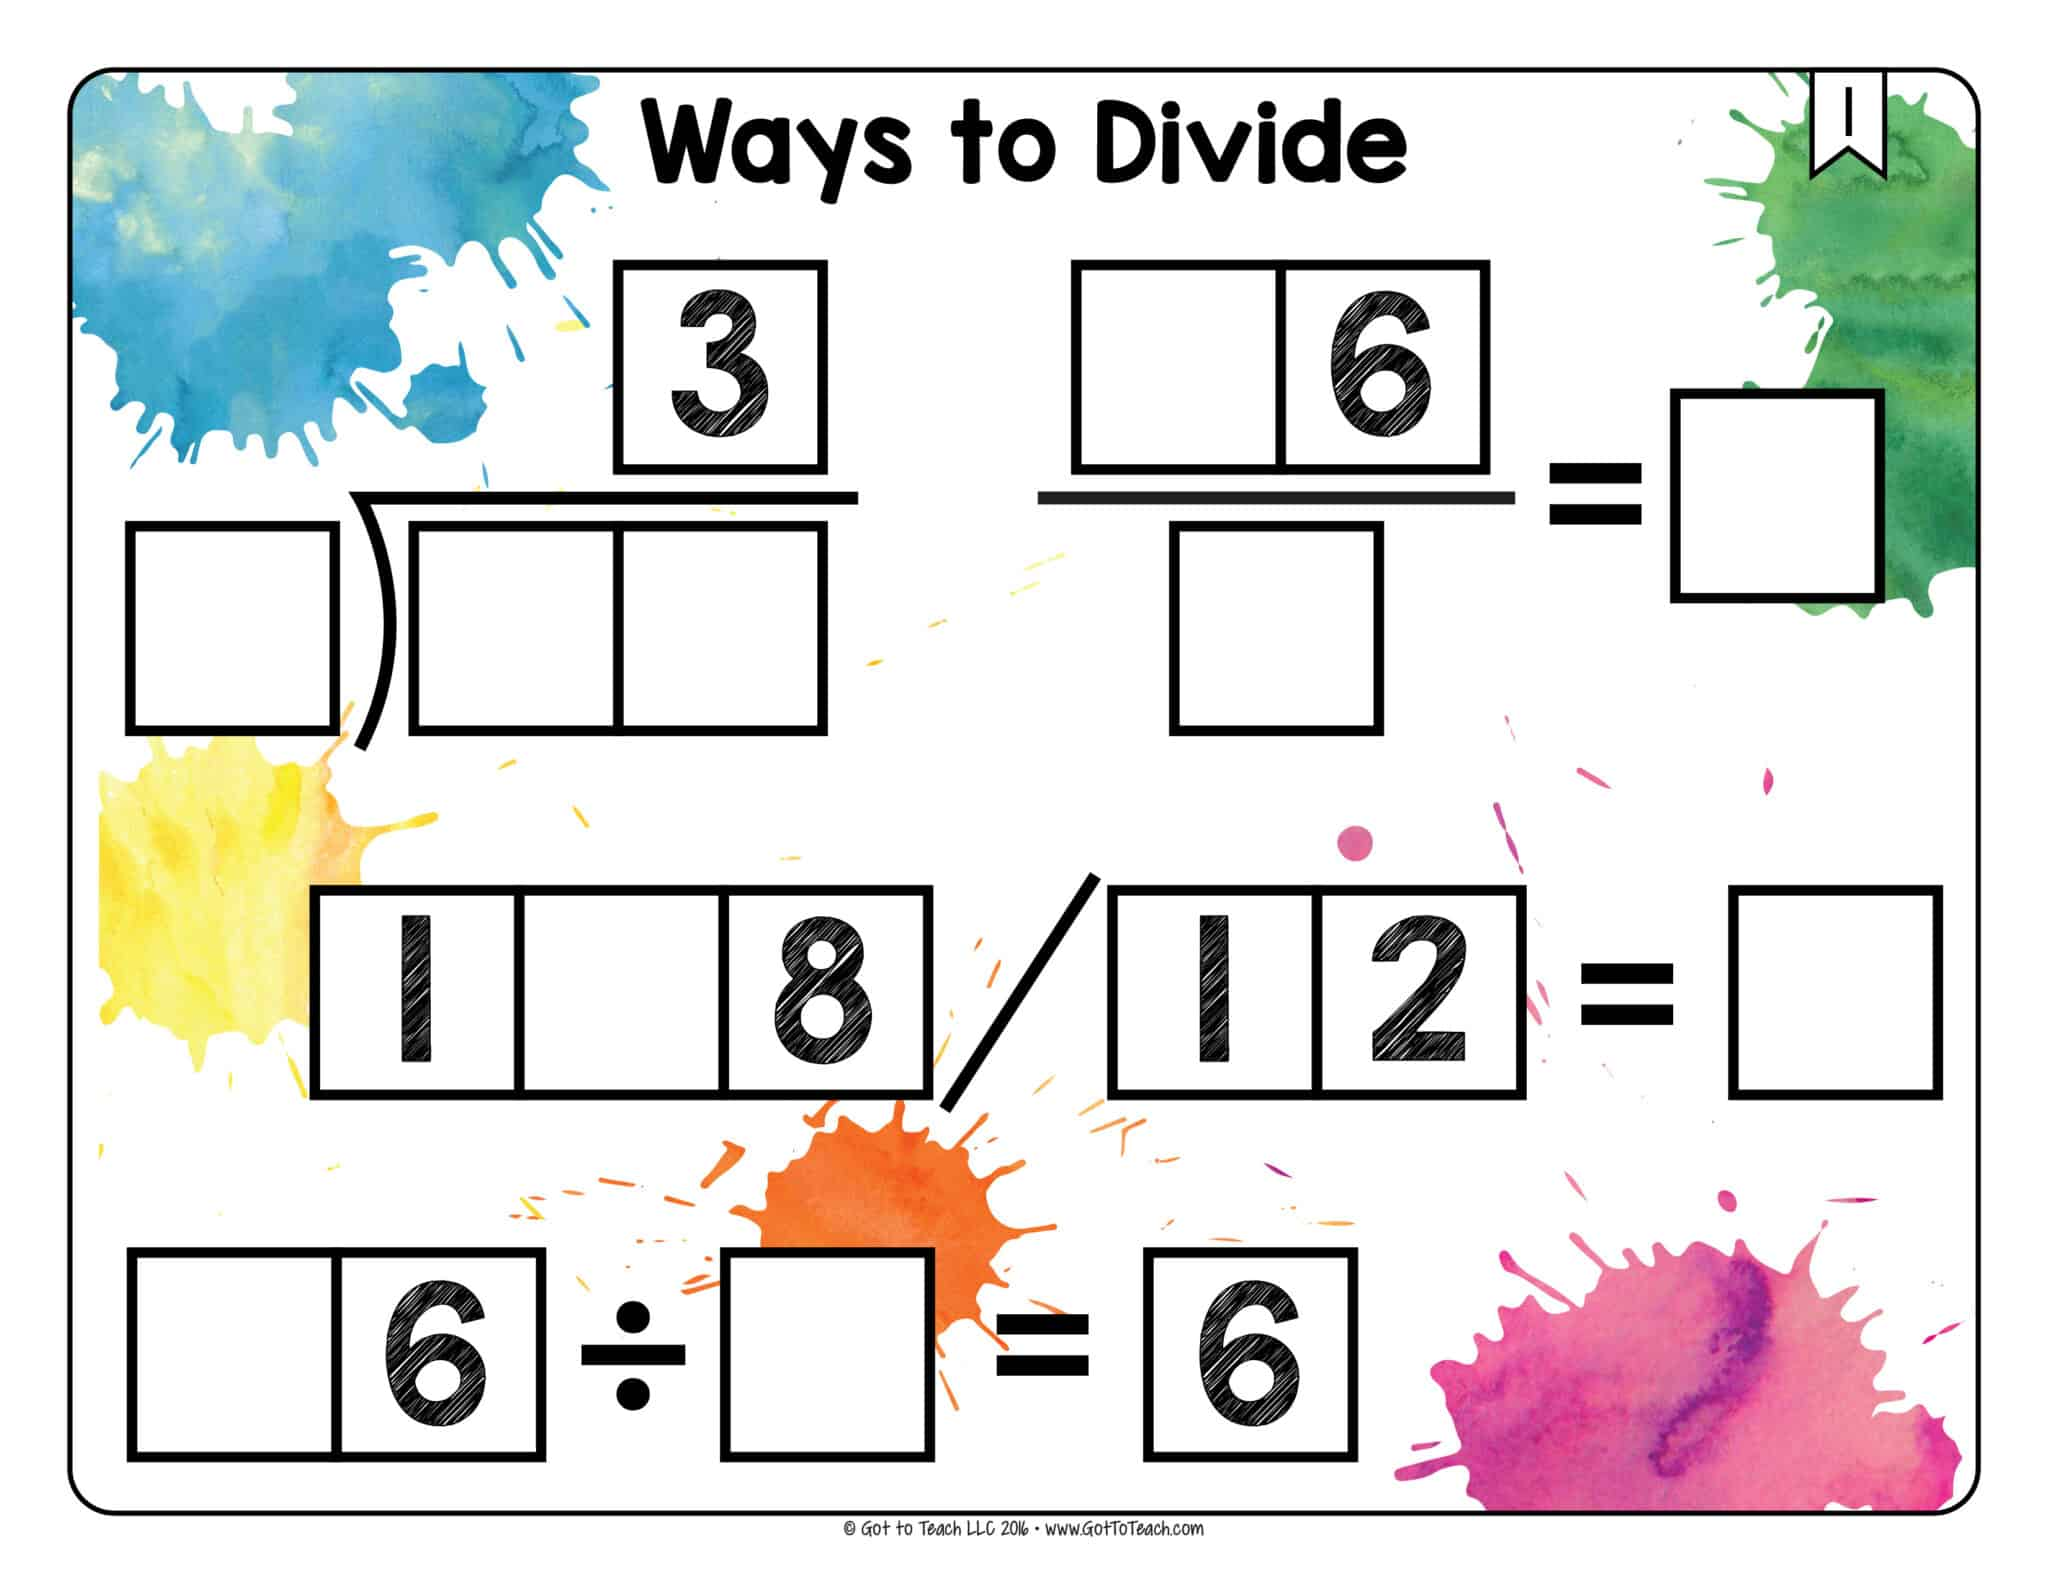 Ways to Divide